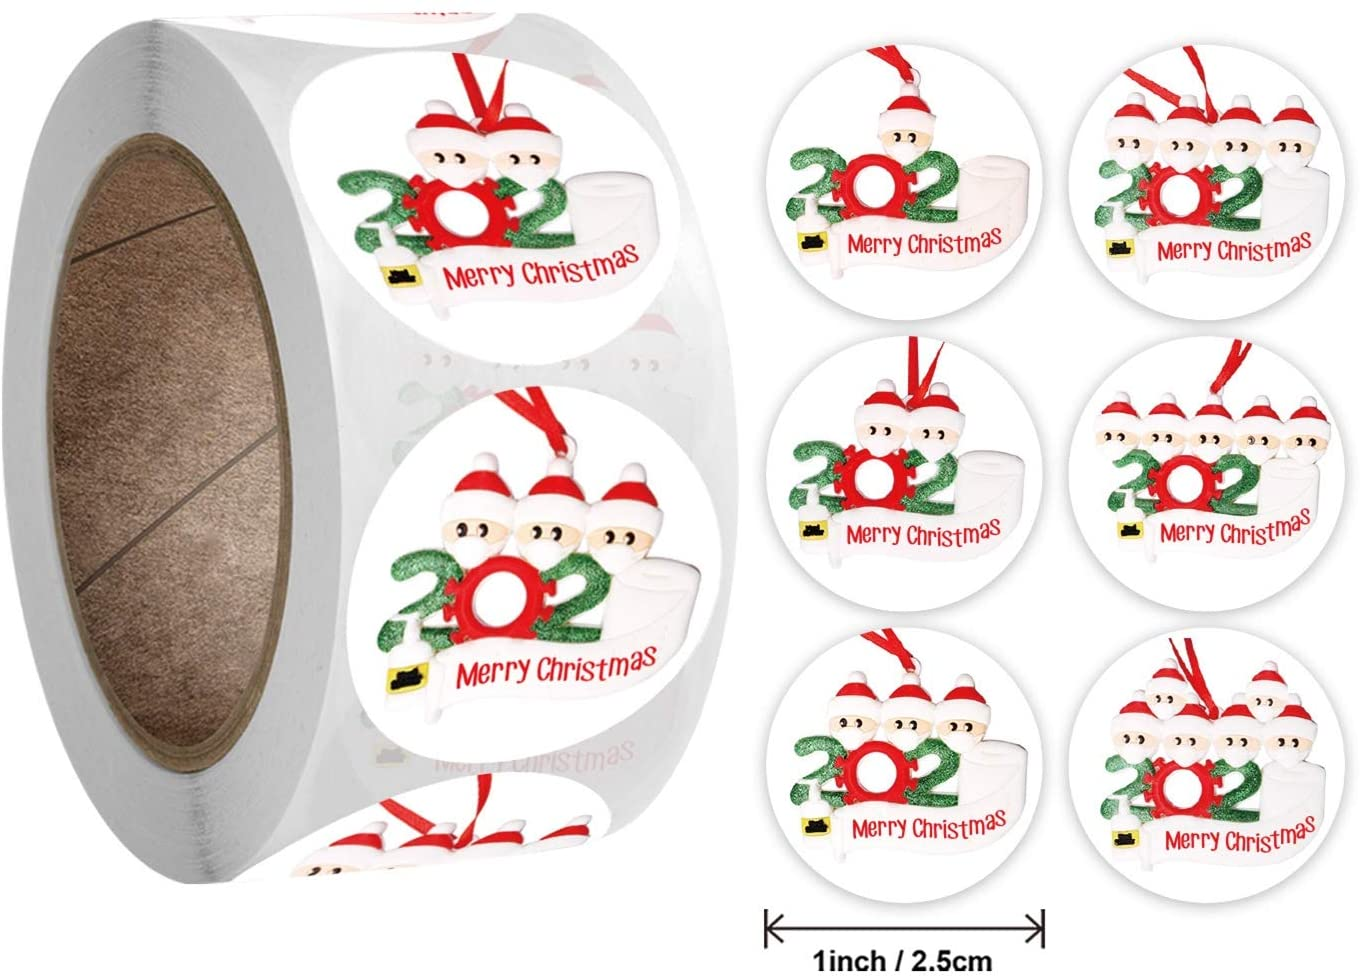 Christmas Stickers for Envelopes 500 Pieces, Christmas Tags Labels for Greeting Cards Seals Gift Boxes (1 Inch, Backup(in Stock))